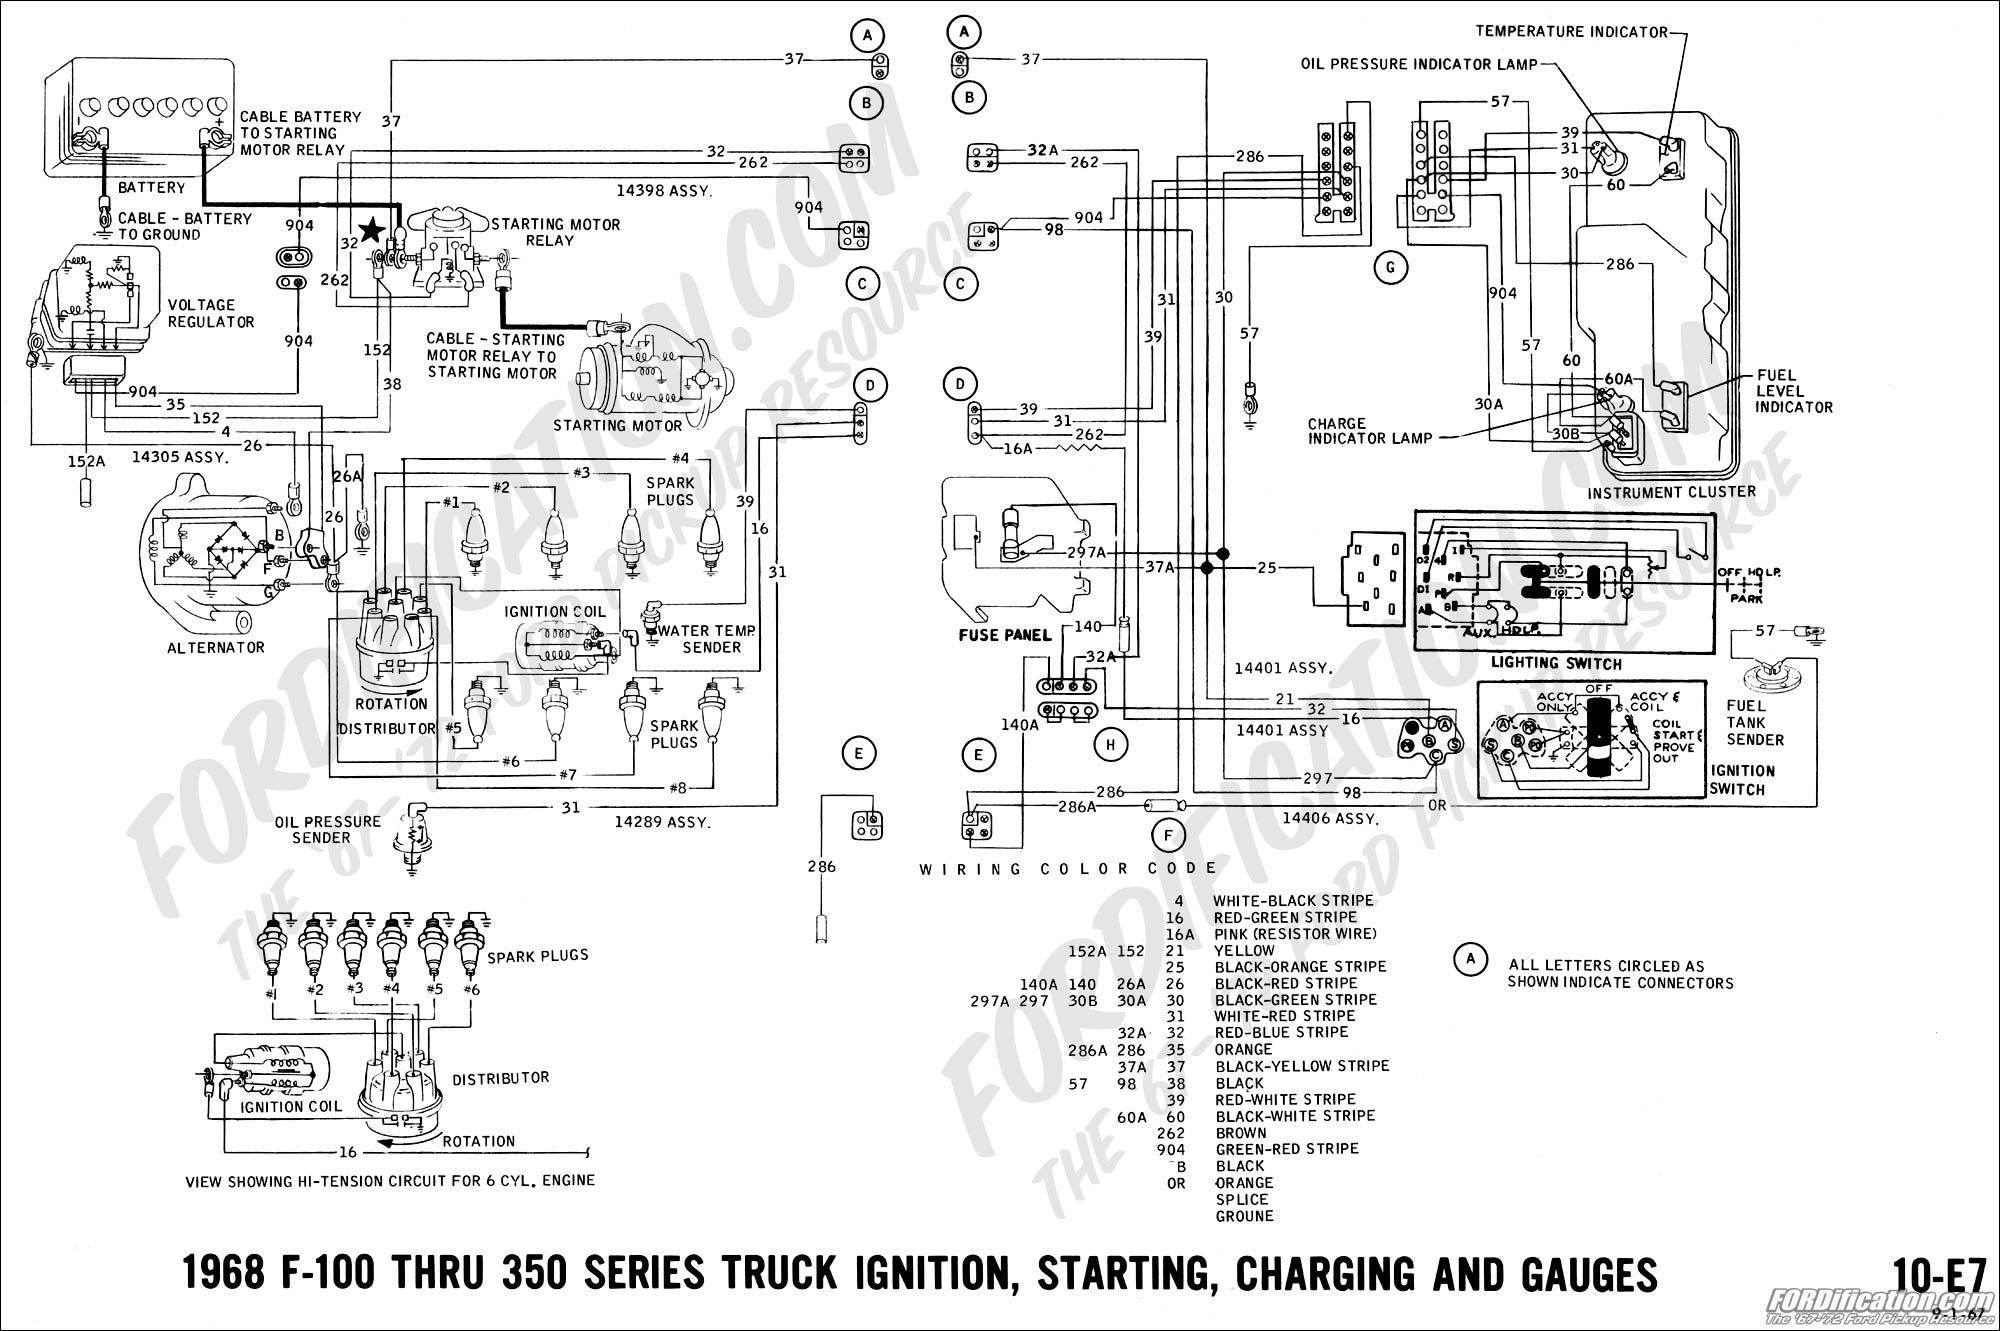 68 09 ford truck technical drawings and schematics section h wiring 1999 F150 Radio Wiring Diagram at metegol.co